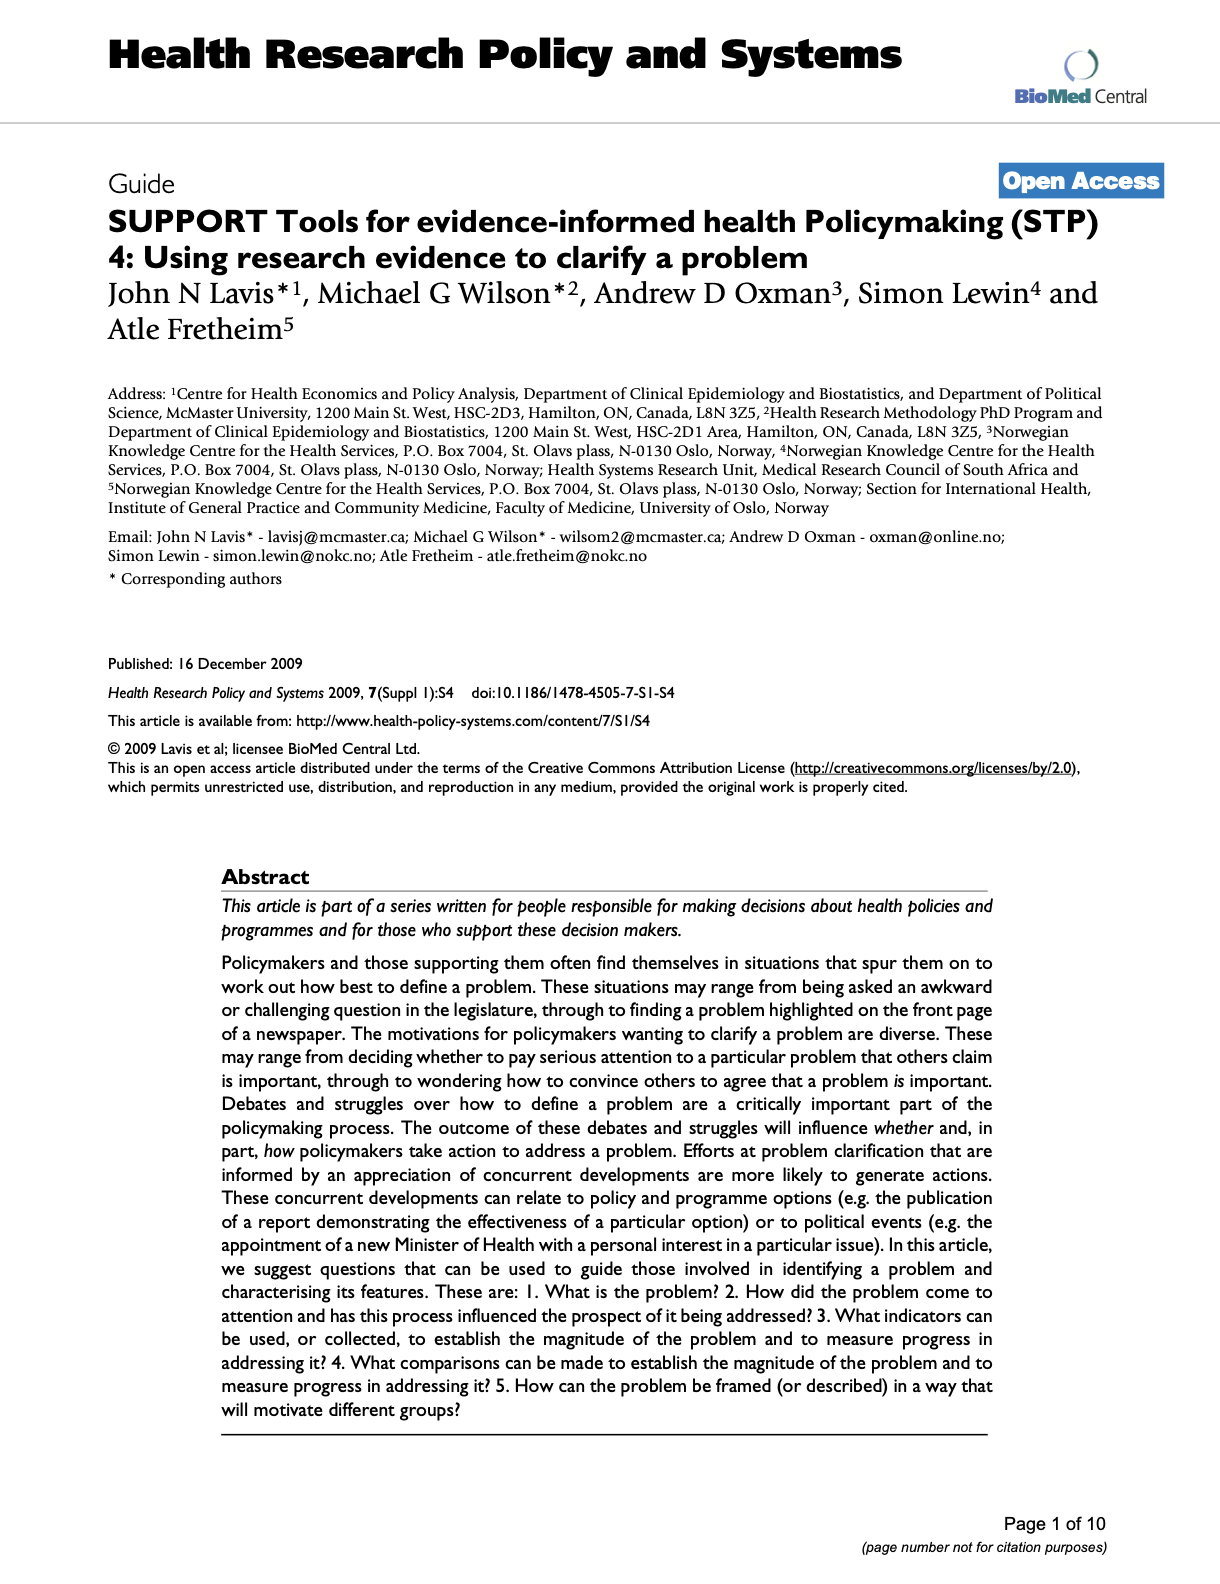 SUPPORT Tools for Evidence-Informed Health Policymaking (STP) 4: Using Research Evidence to Clarify a Problem